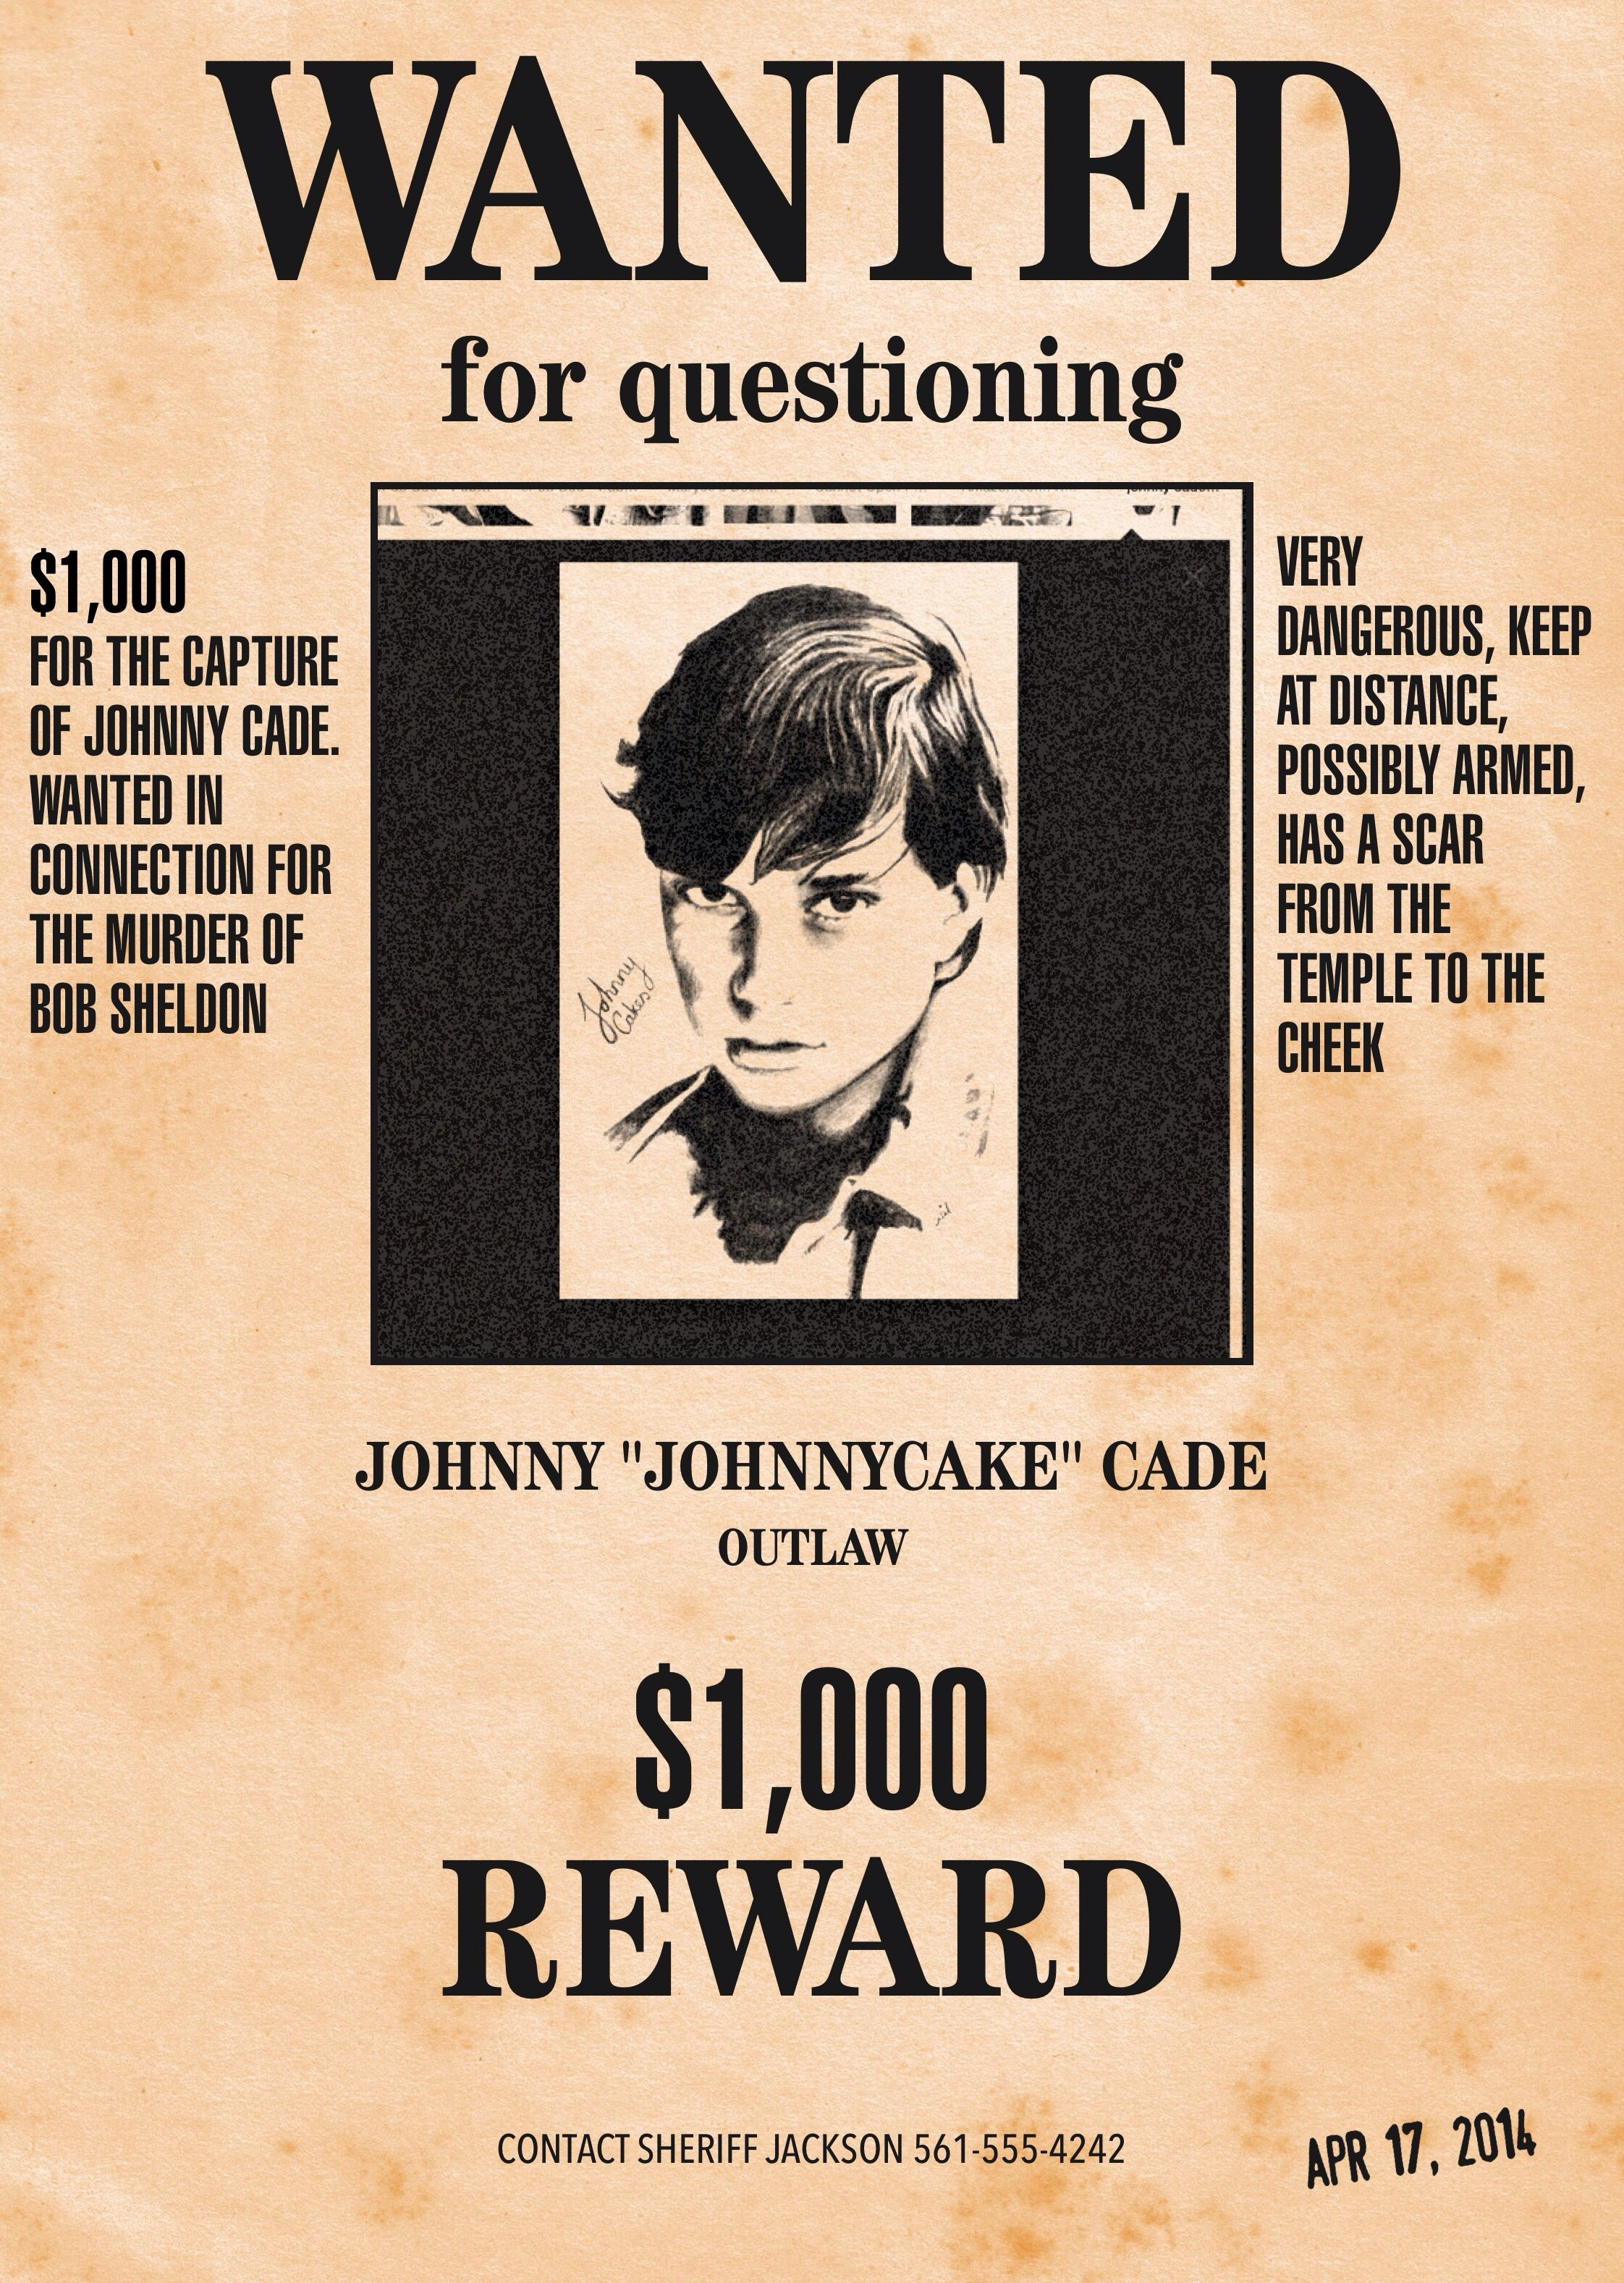 Wanted Poster Examples Wanted Largejpg, 8 Famous Wanted Poster Designs, 8  Famous Wanted Poster Designs,  Examples Of Wanted Posters